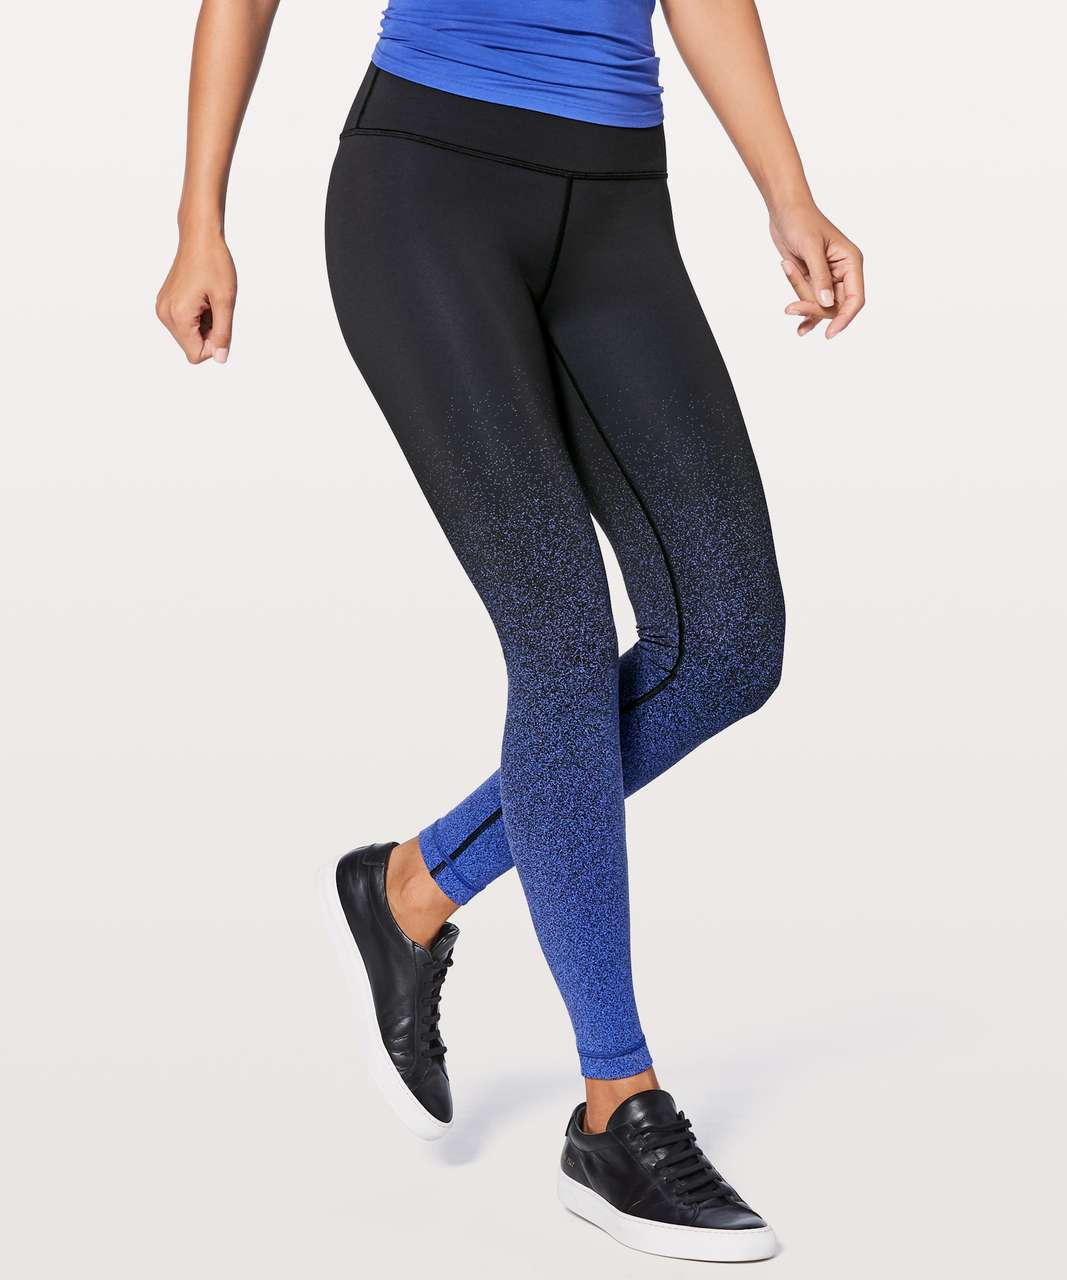 "Lululemon Wunder Under Hi-Rise Tight (Ombre Speckle) 28"" - Ombre Speckle Stop Jacquard Luon Black Blazer Blue"